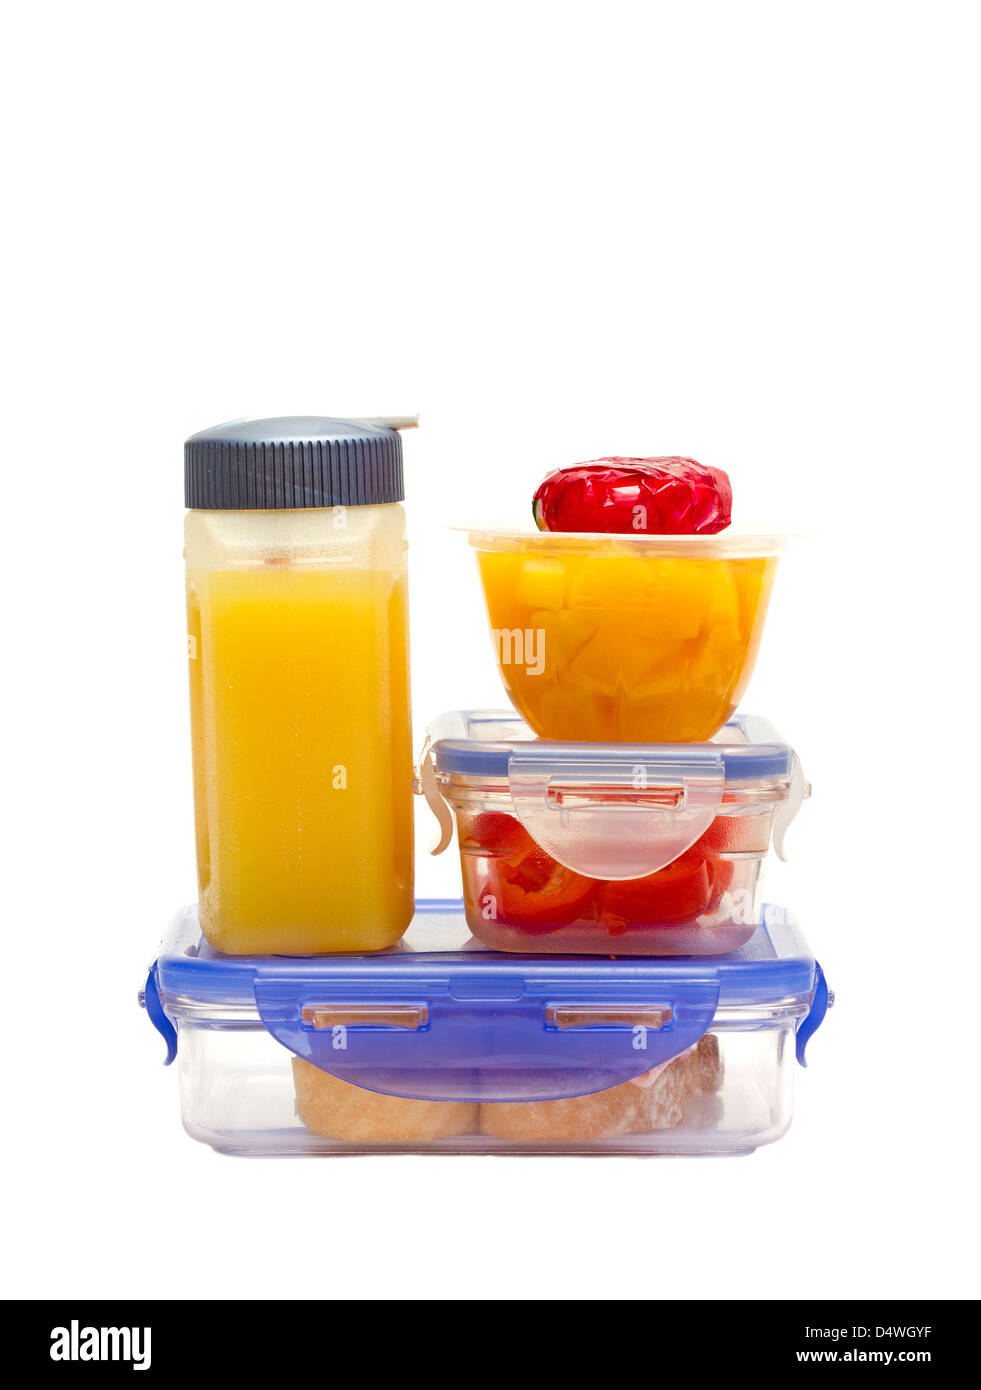 School healthy lunch for kids - Stock Image